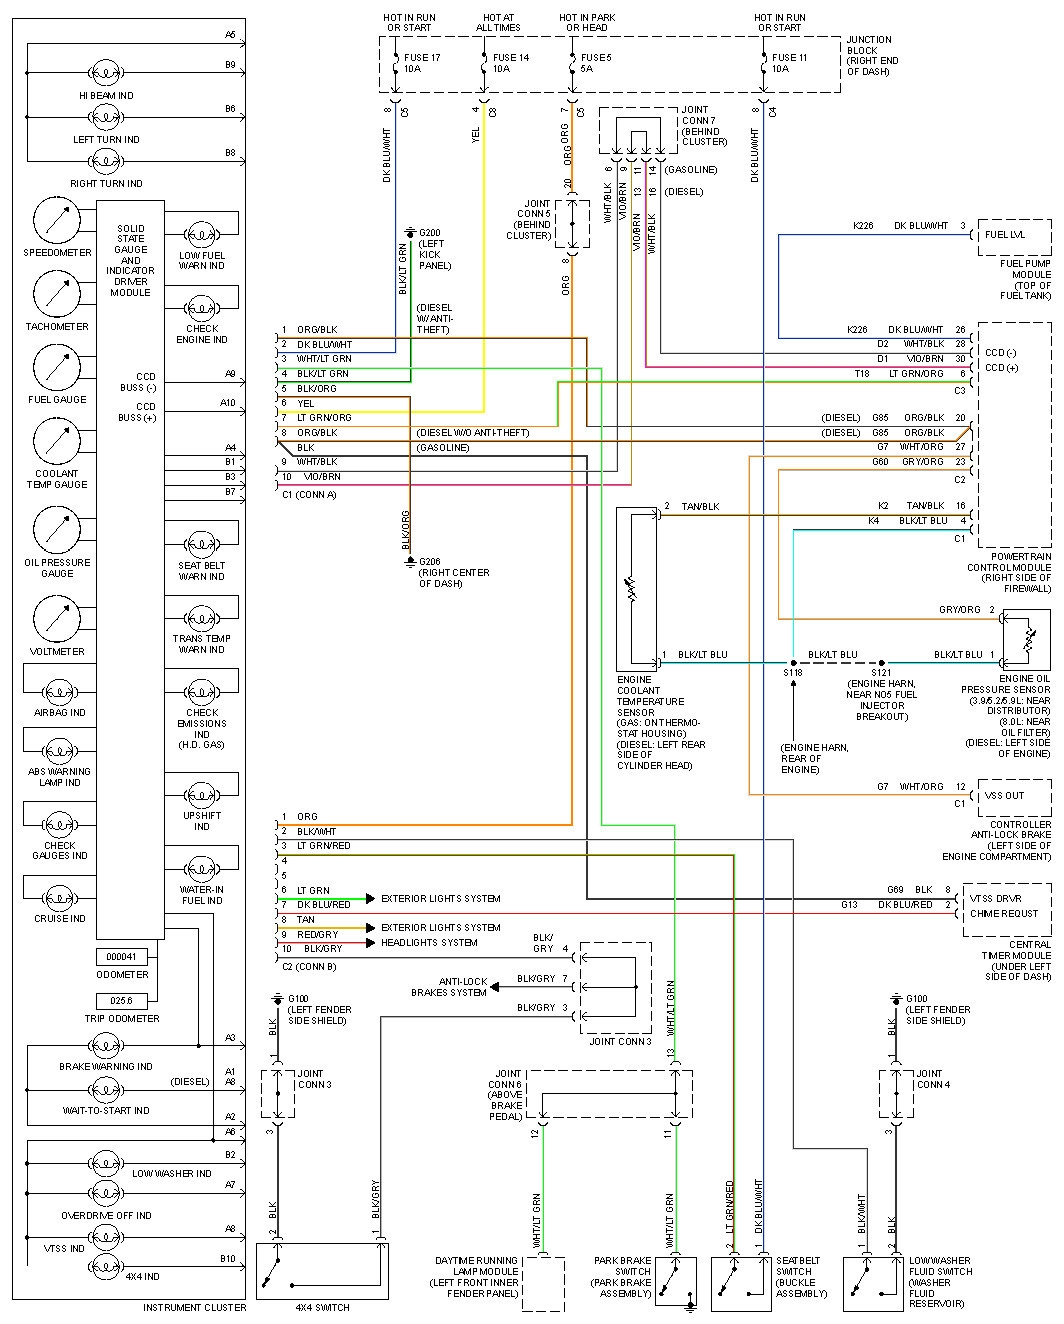 Wiring 2001 Dodge Ram Abs Location - Wiring Diagram & Cable ... on